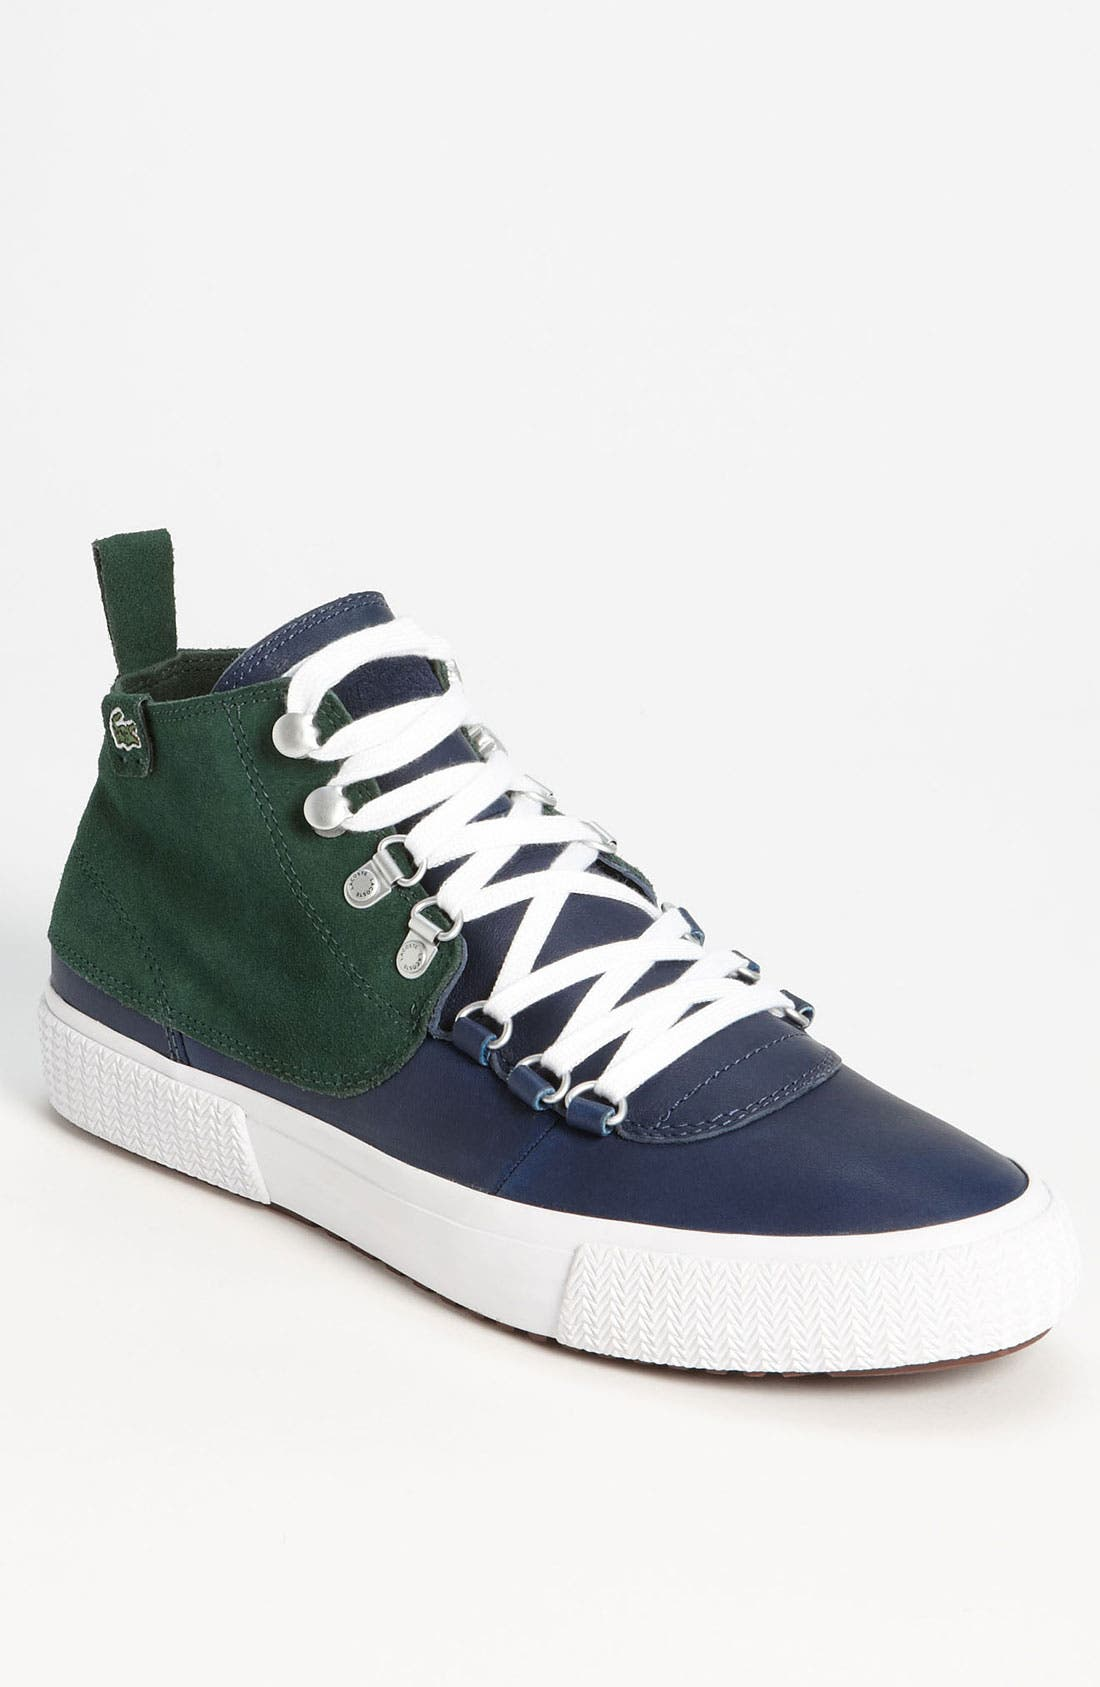 Alternate Image 1 Selected - Lacoste 'Bruton LMS' Sneaker